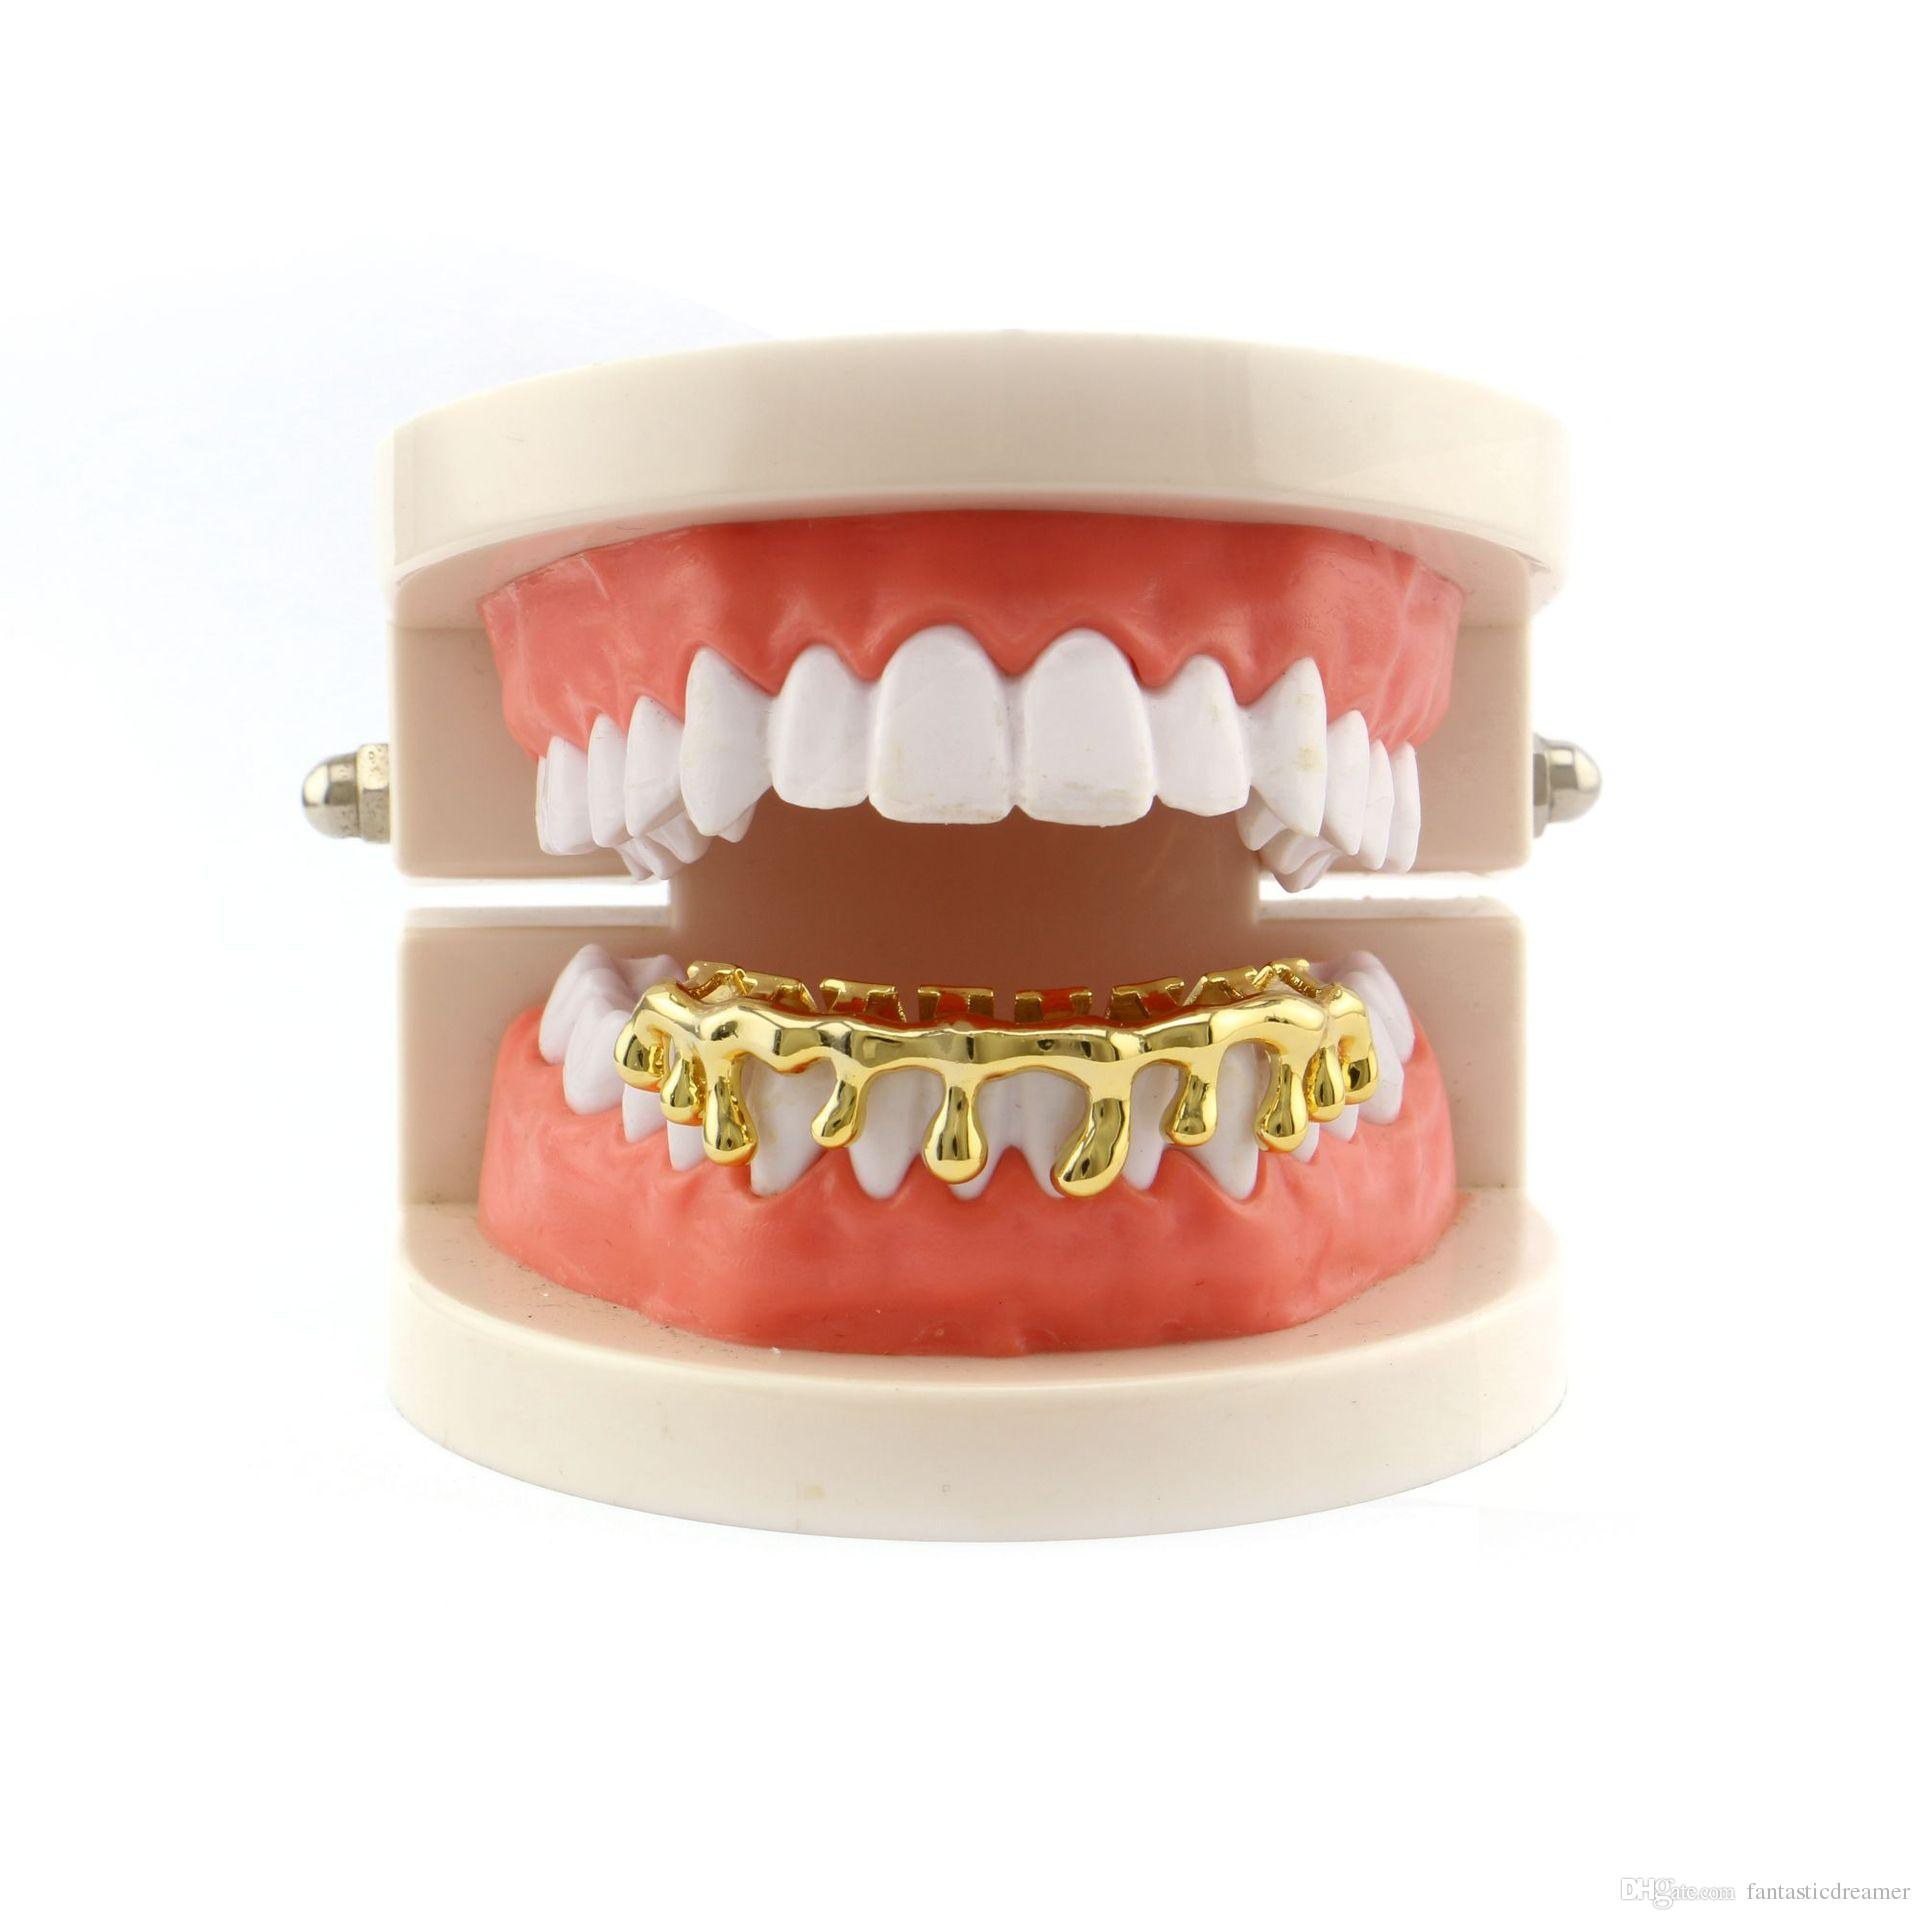 Factory Bottom Price Single Fangs Teeth Grillz Smooth Silver Gold Rose Gold  Color Grillz Teeth Cheap Teeth Hip Hop Men Jewelry UK 2019 From  Fantasticdreamer ... be63a6e28bcc